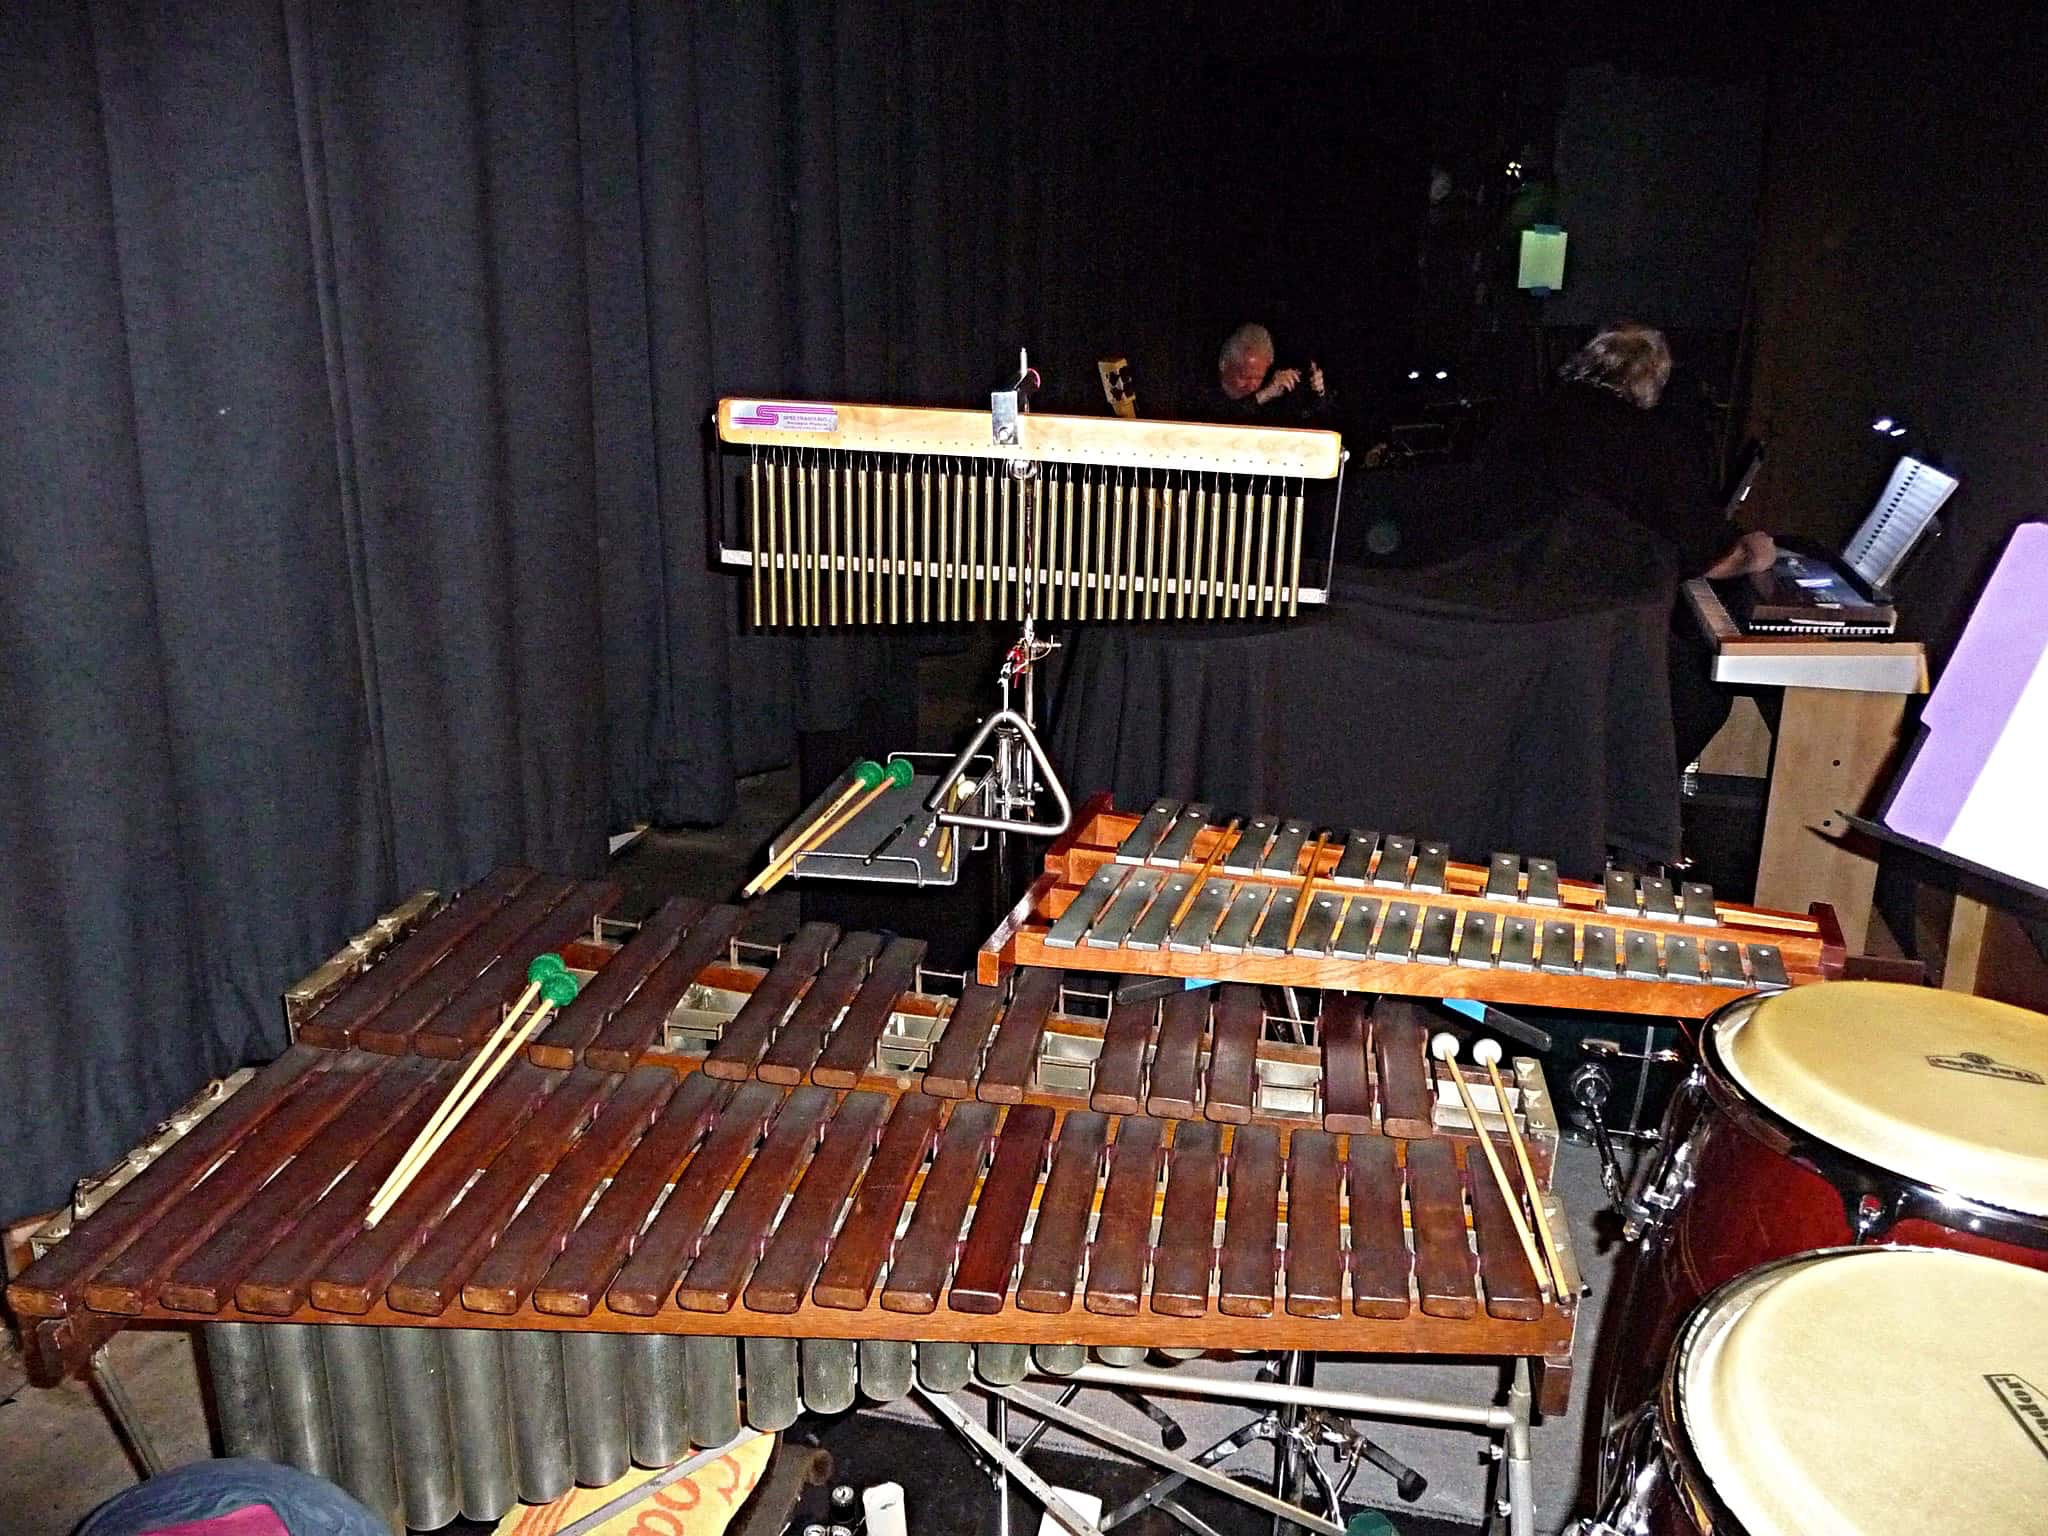 Debbie Minnichelli's percussion setup for Smokey Joe's Cafe at the Stage Door Repertory Theatre in Anaheim, California.